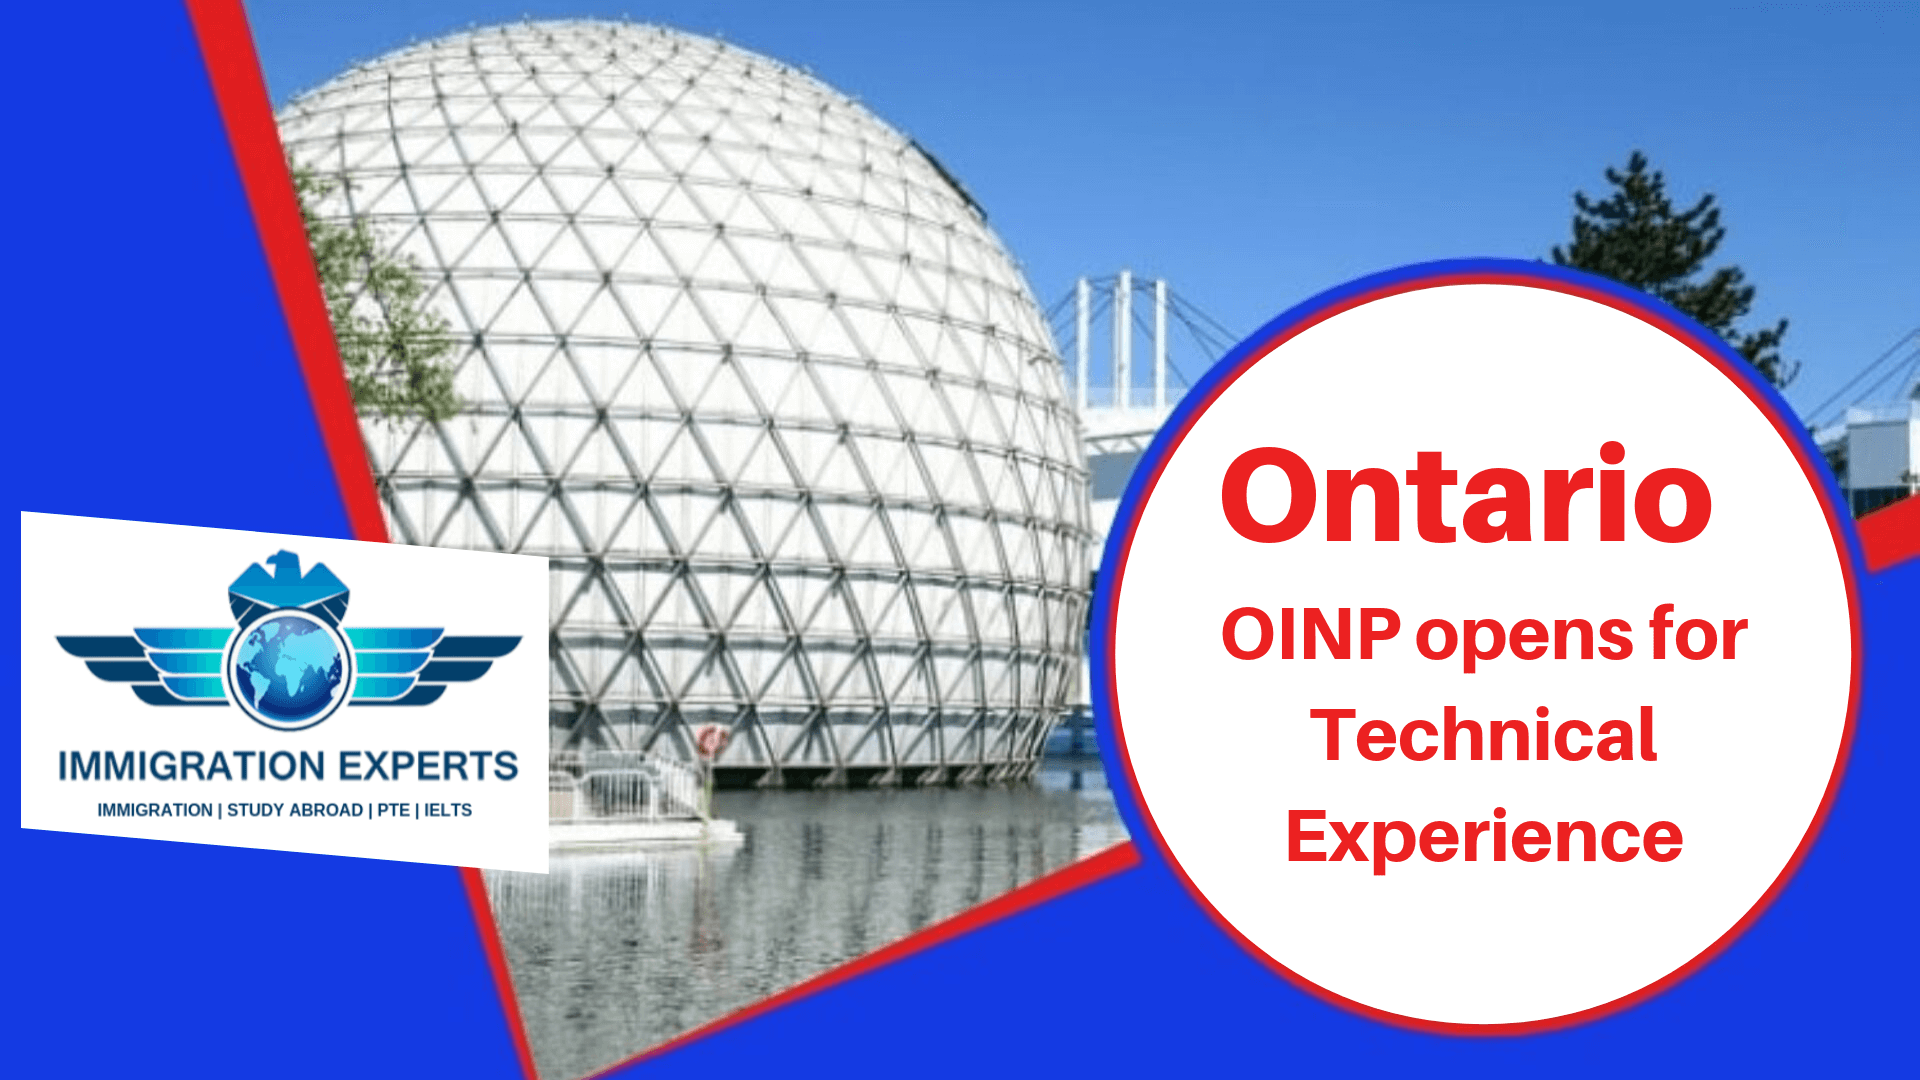 Ontario Target Entry Level Candidates With Technical Experience Immigrationexperts News Blogs